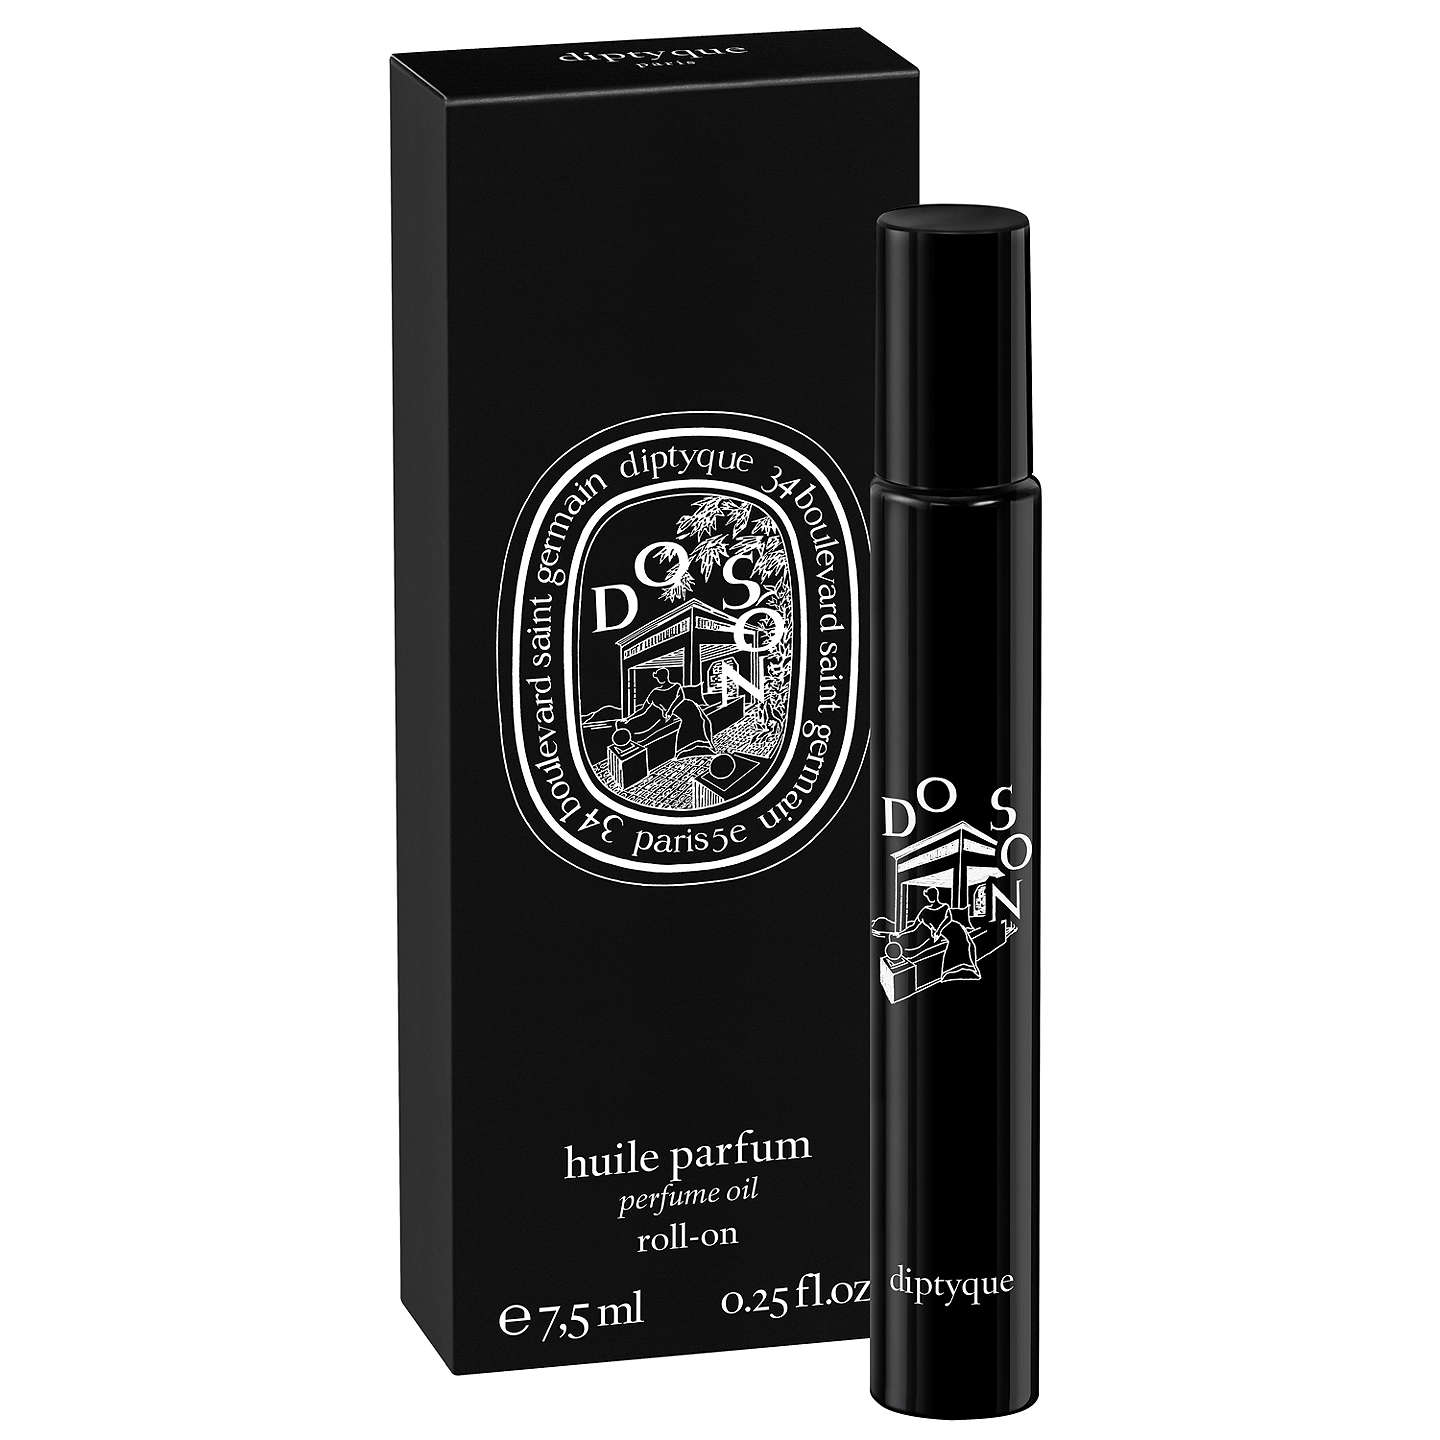 BuyDiptyque Do Son Perfume Oil Roll-On, 7.5ml Online at johnlewis.com